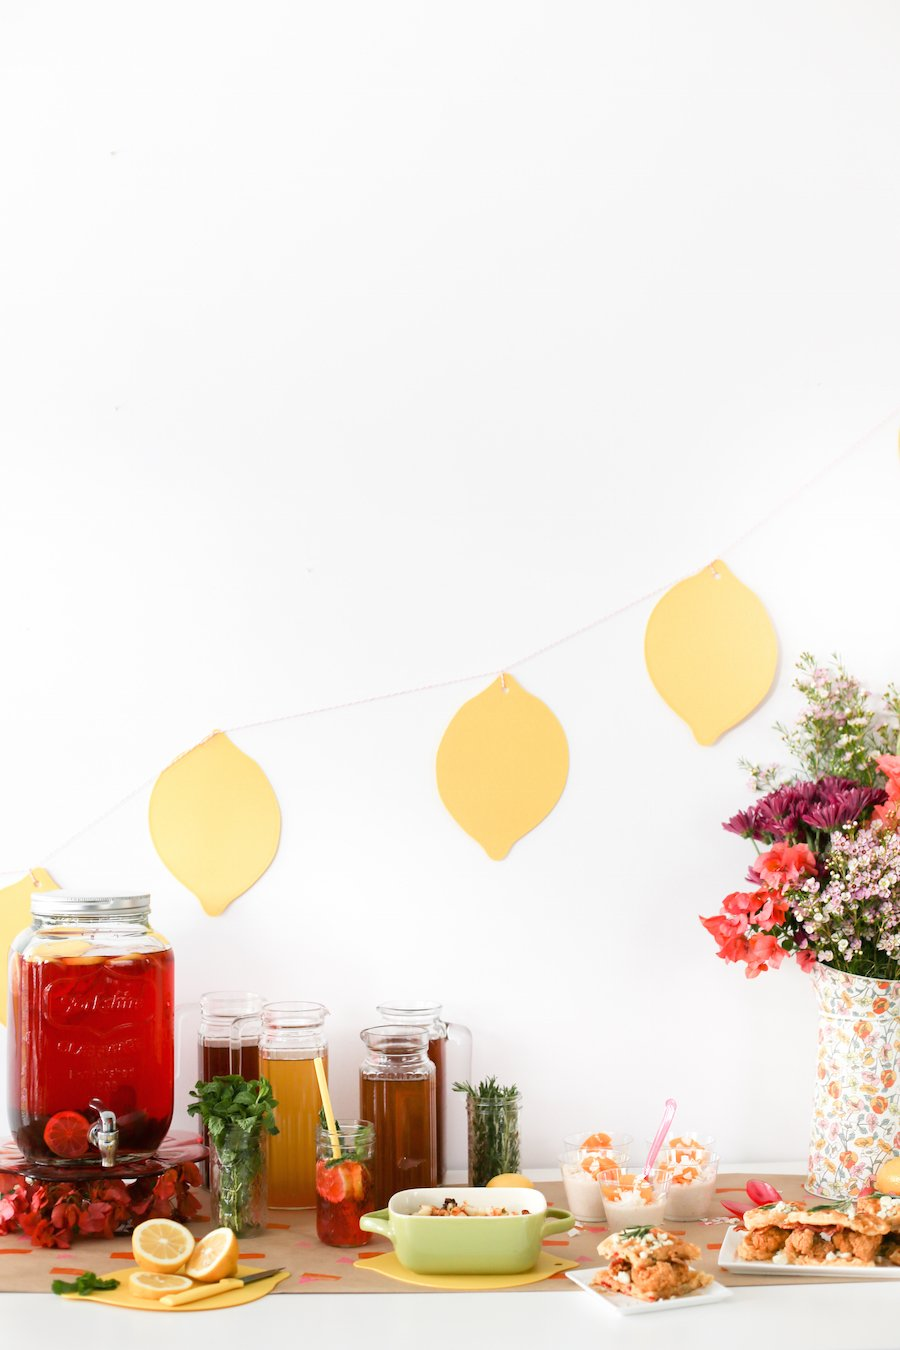 Throw a Southern-Style Spring Brunch Party to celebrate the arrival of spring complete with an Iced Tea Bar, Chicken & Waffle Sliders, and Peach Coconut Grits! The perfect backdrop for Easter, Mother's Day, a spring bridal or baby shower!